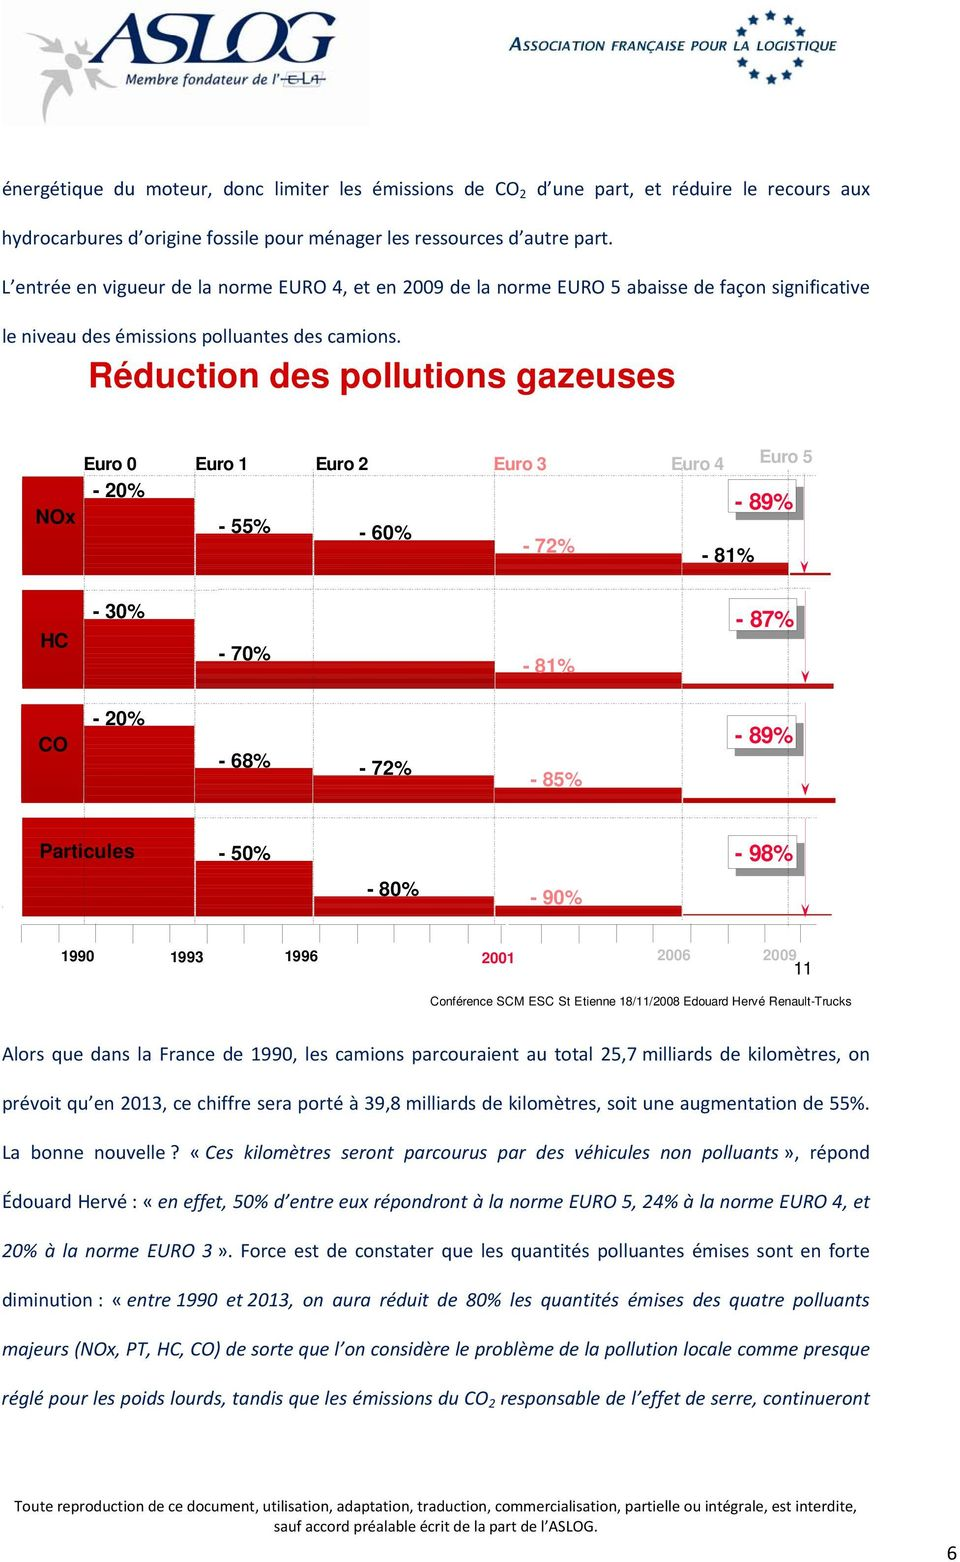 Réduction des pollutions gazeuses Euro 0 Euro 1 Euro 2 Euro 3 Euro 4 Euro 5-20% - 89% NOx - 55% - 60% - 72% - 81% HC - 30% - 70% - 81% - 87% CO - 20% - 68% - 72% - 85% - 89% Particules - 50% - 98% -